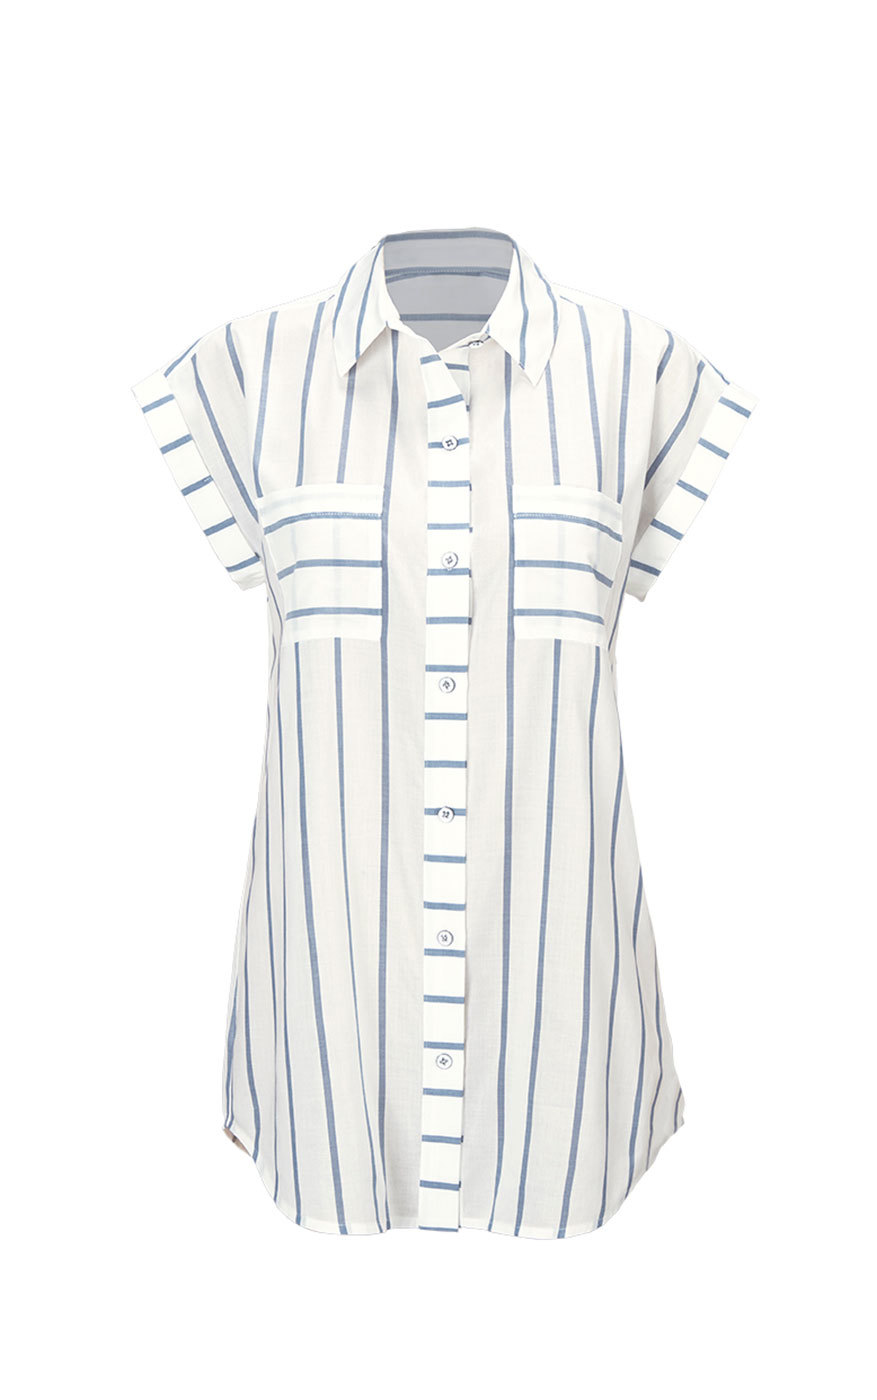 cabi's Cruise Button-Up